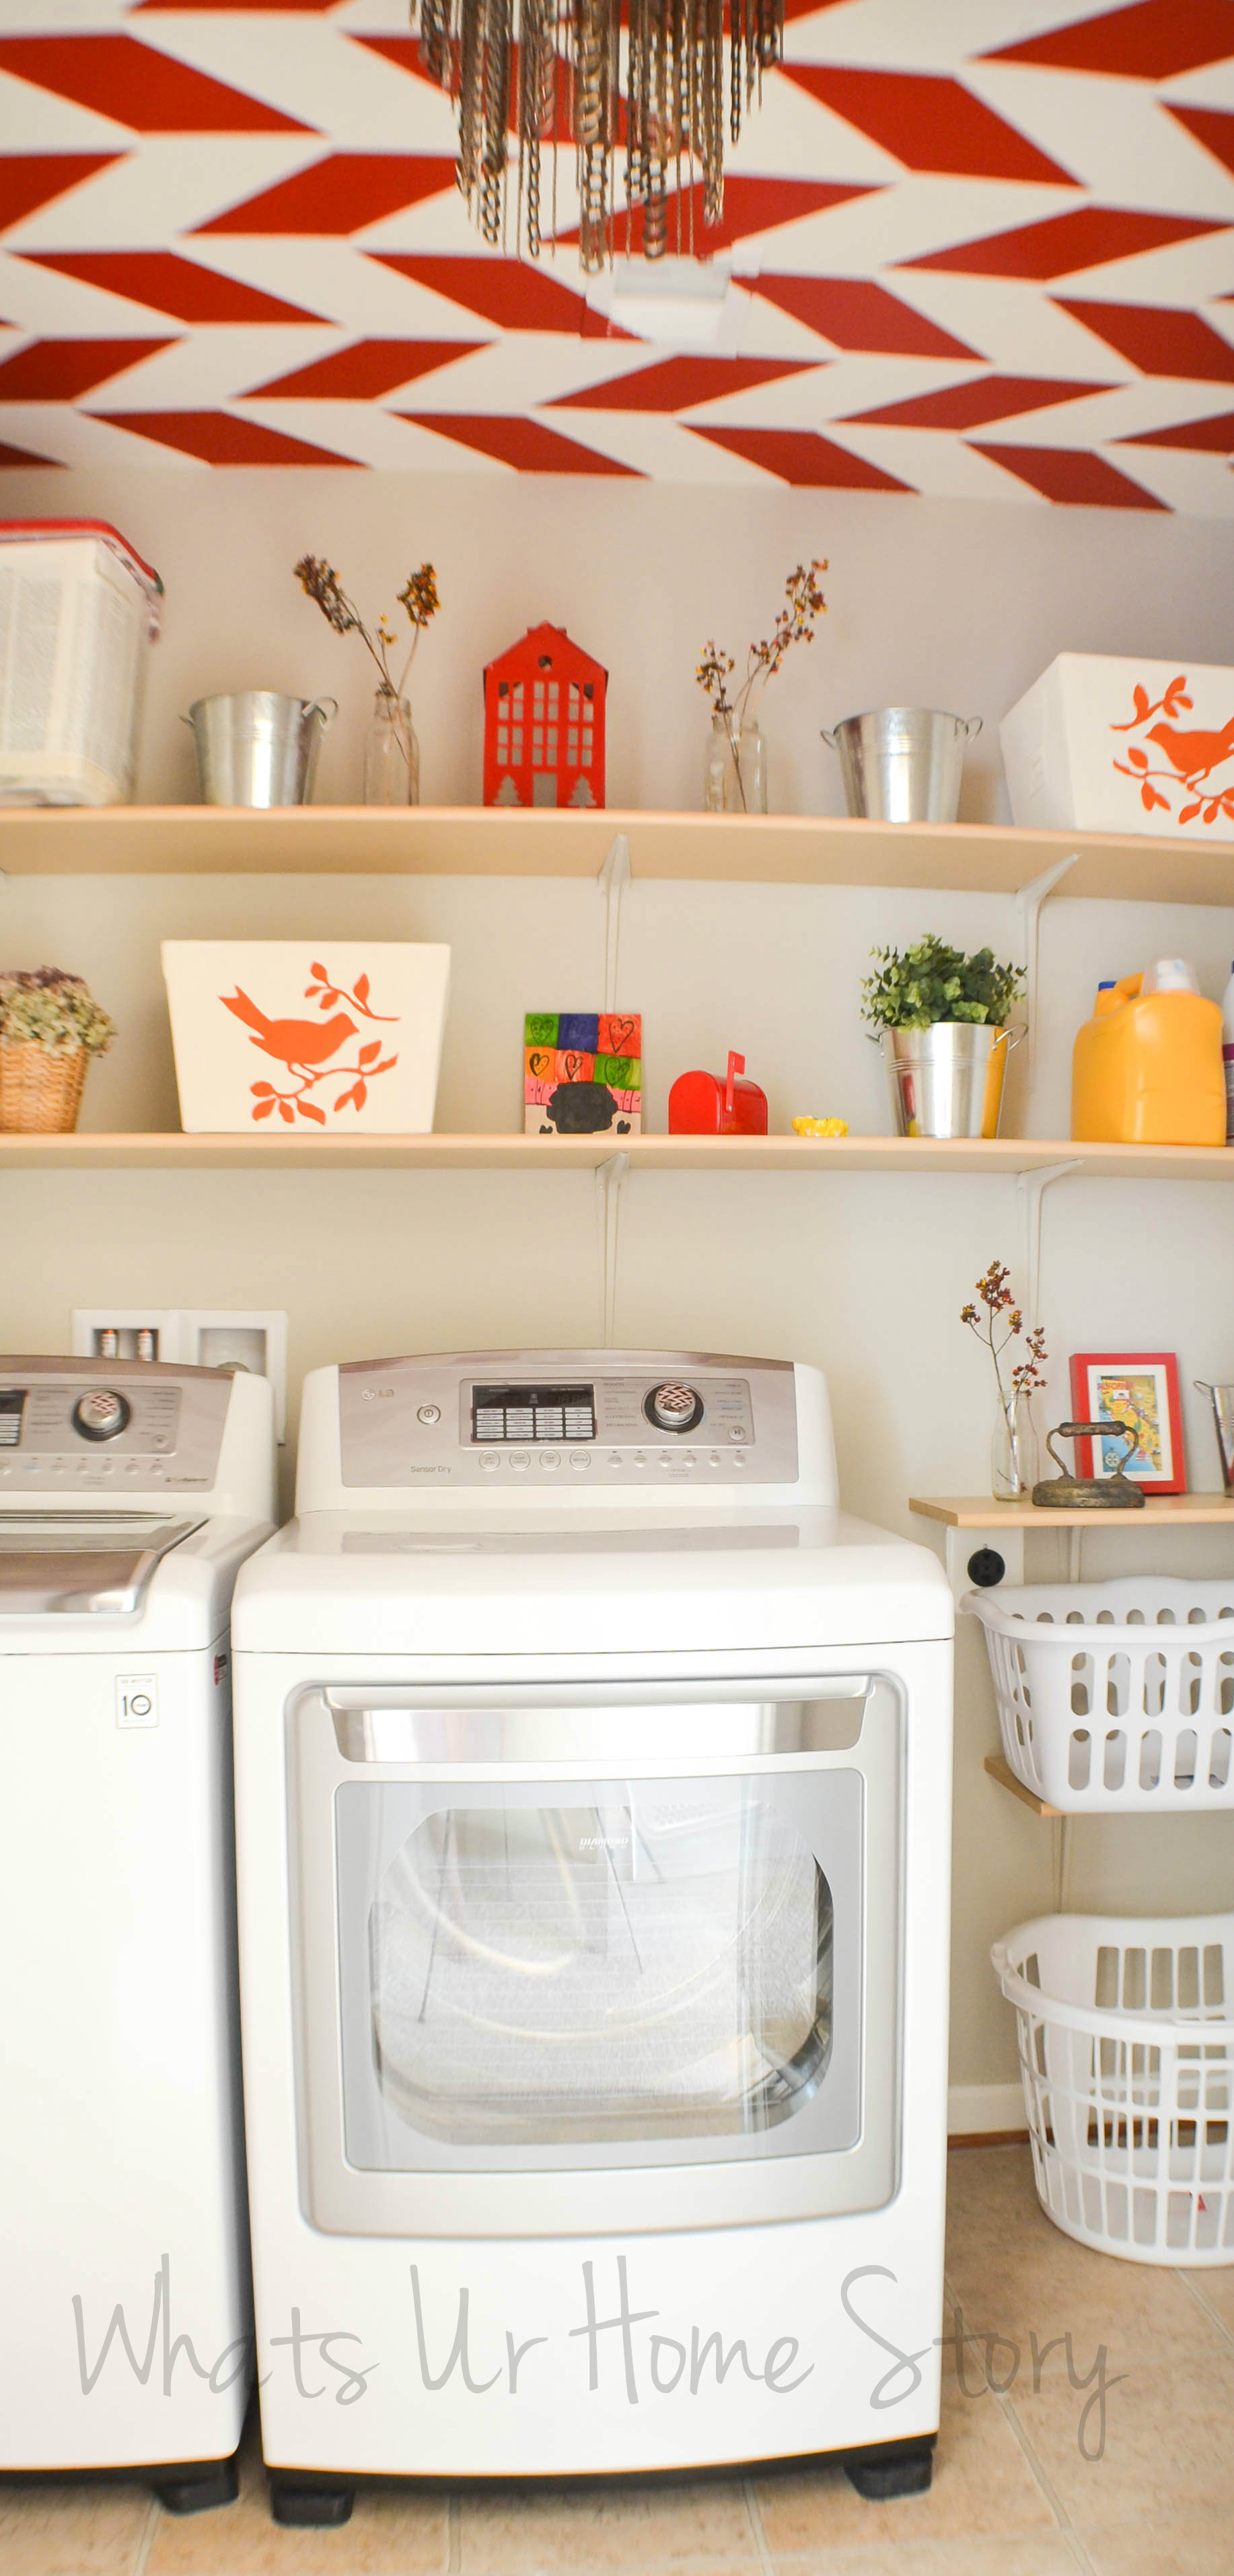 Simple diy wall shelves for the laundry room whats ur home story simple diy wall shelves for the laundry room amipublicfo Image collections